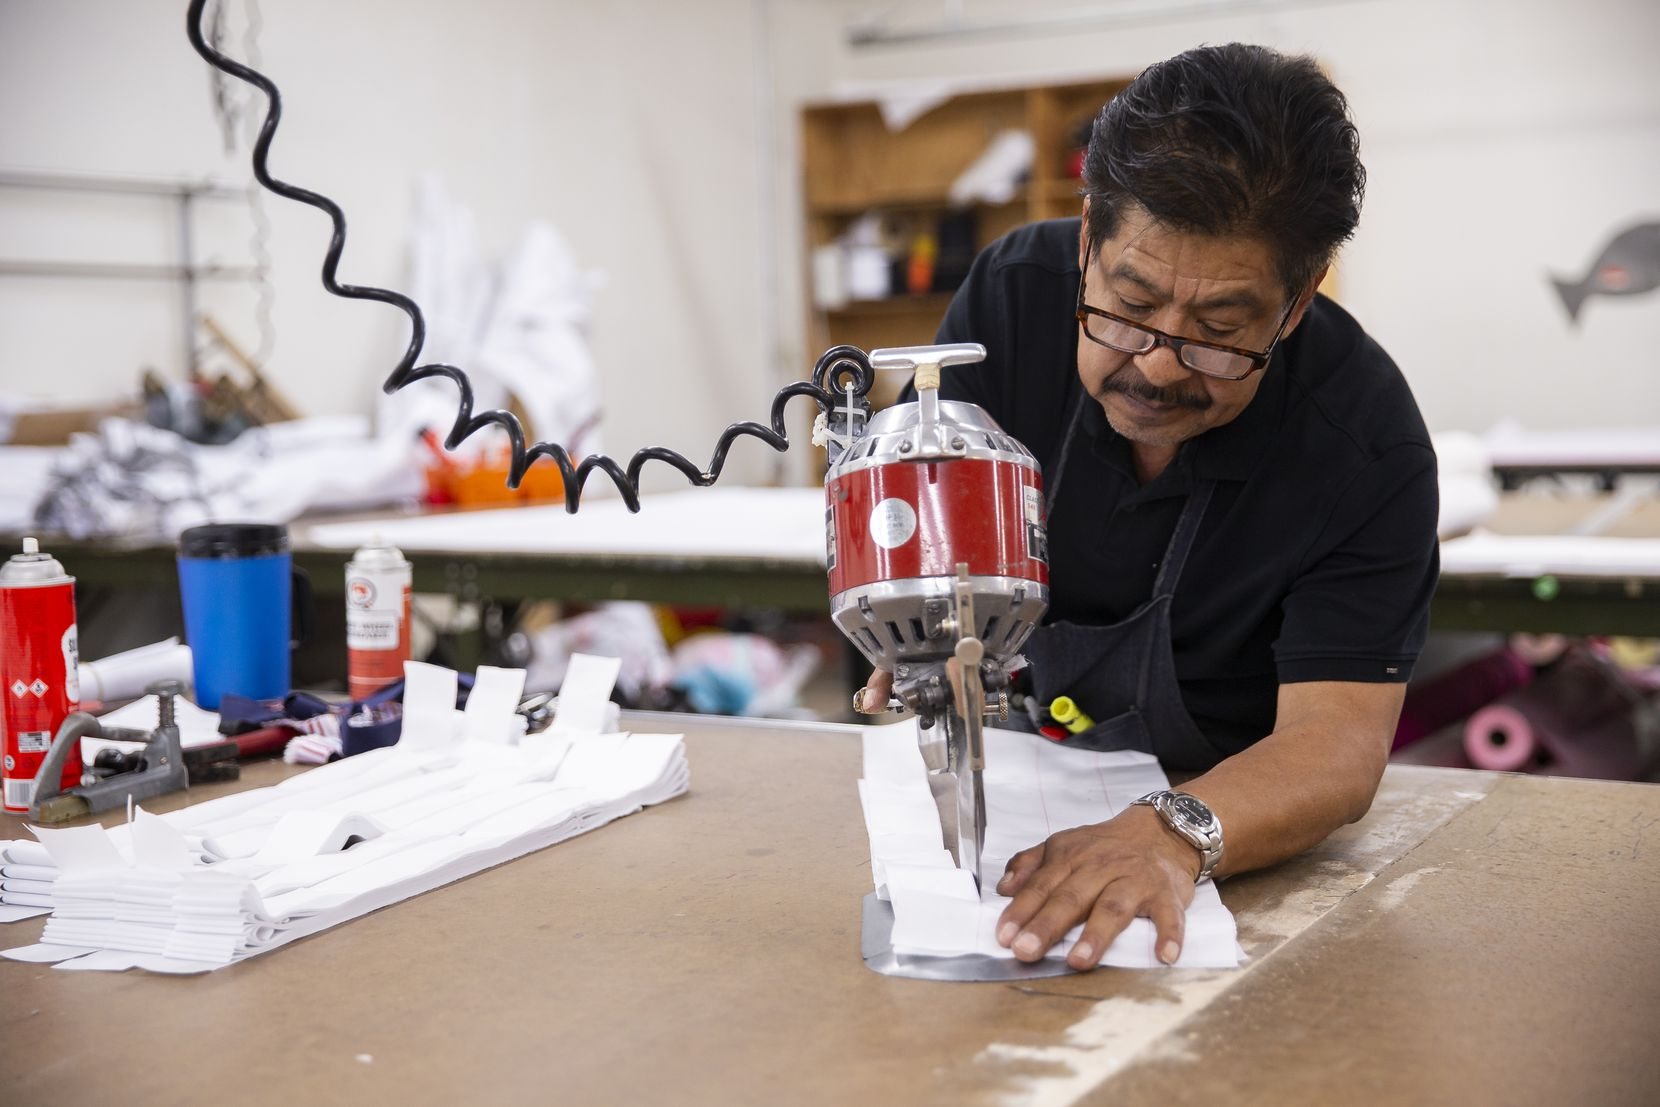 Business owner Rudy Romero cuts fabric at T&Q Cutting Services on May 2, 2020, in Dallas. Romero has been helping supply hospitals and others with PPE such as face masks and gowns.